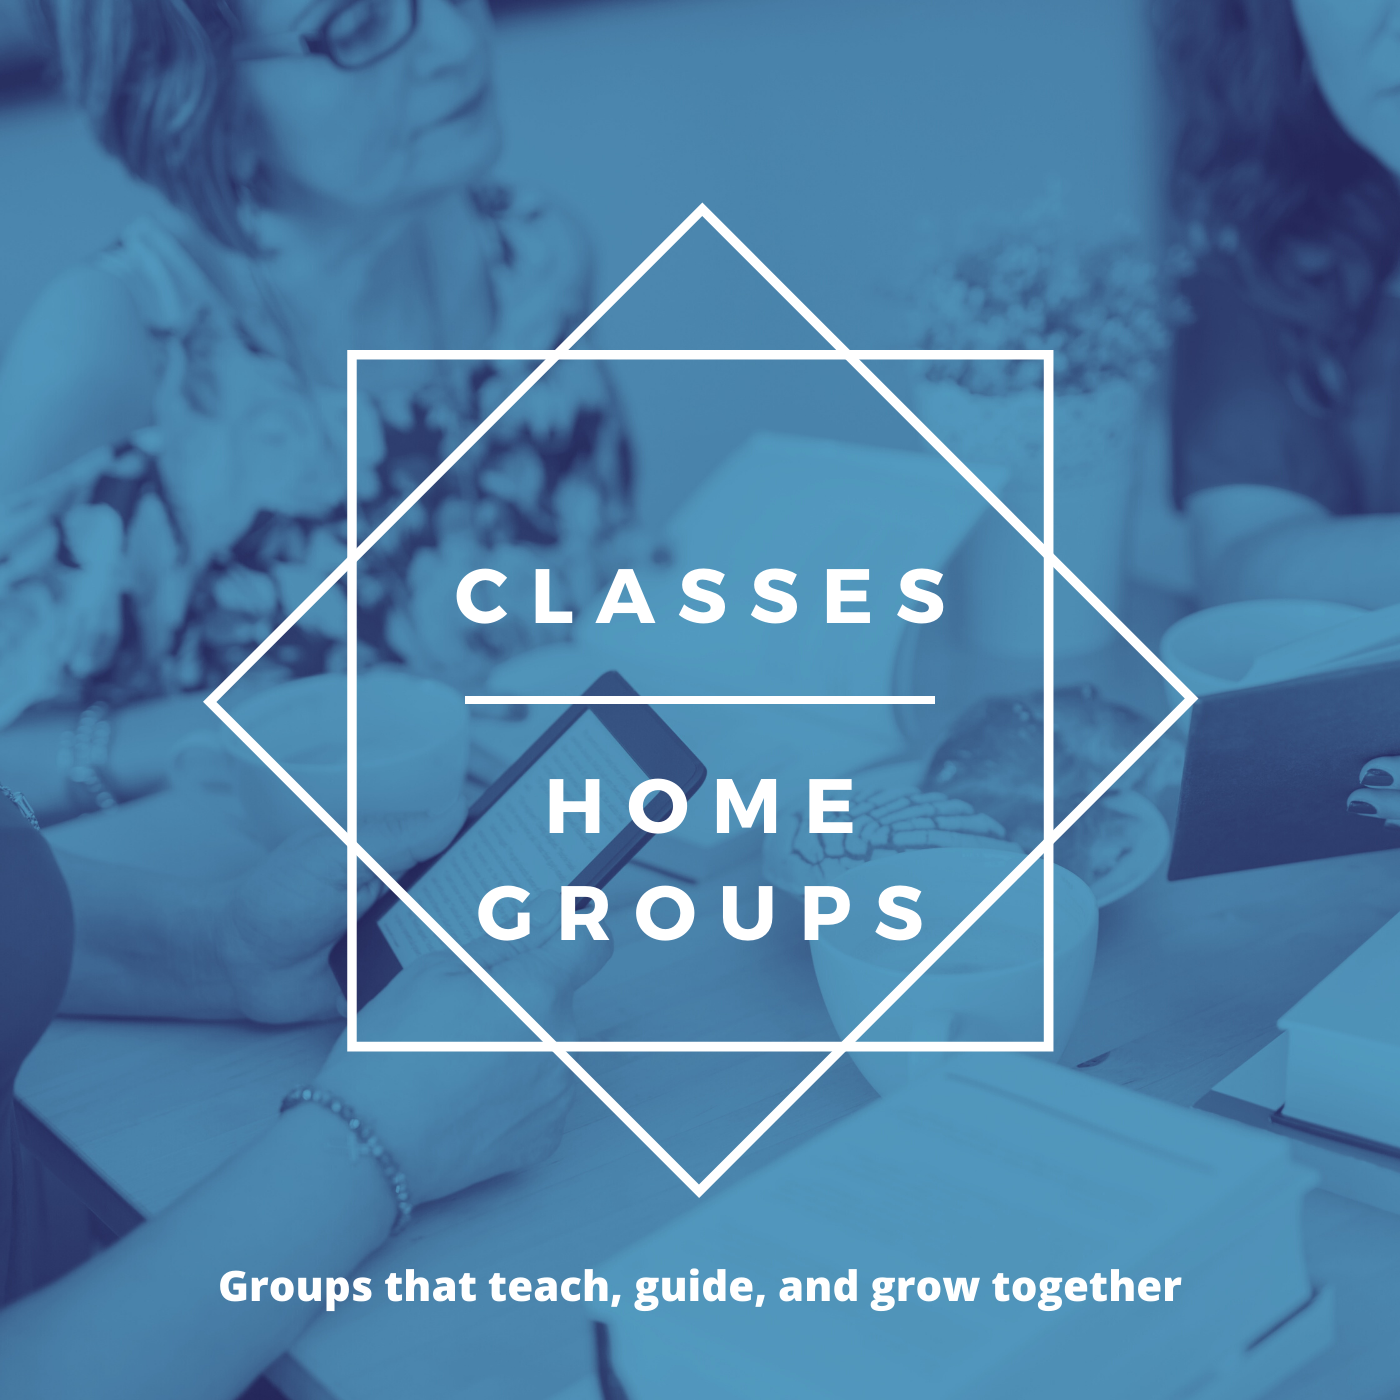 Classes & Home Groups